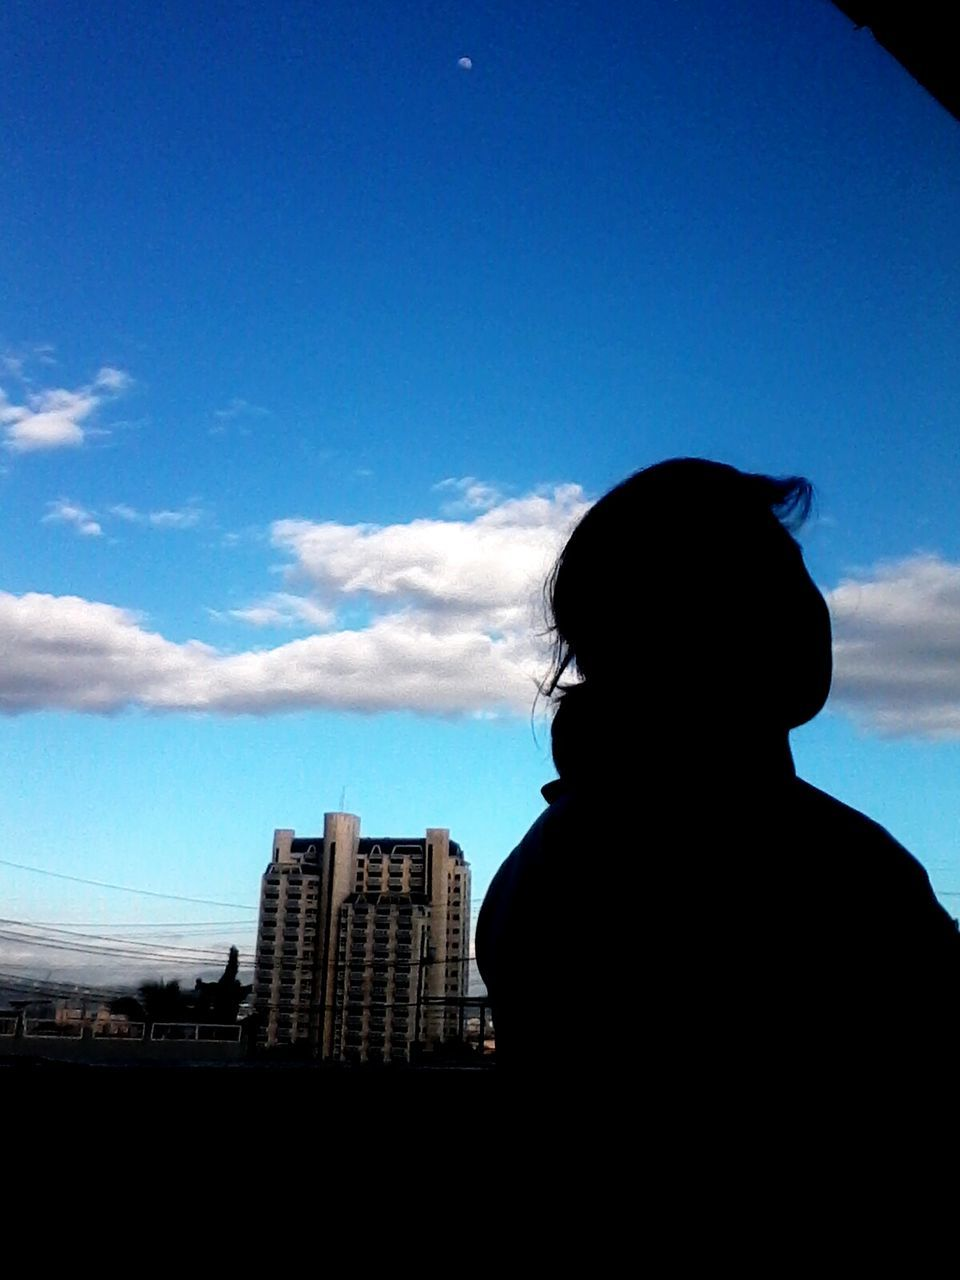 silhouette, sky, architecture, one person, skyscraper, building exterior, real people, city, cityscape, day, outdoors, people